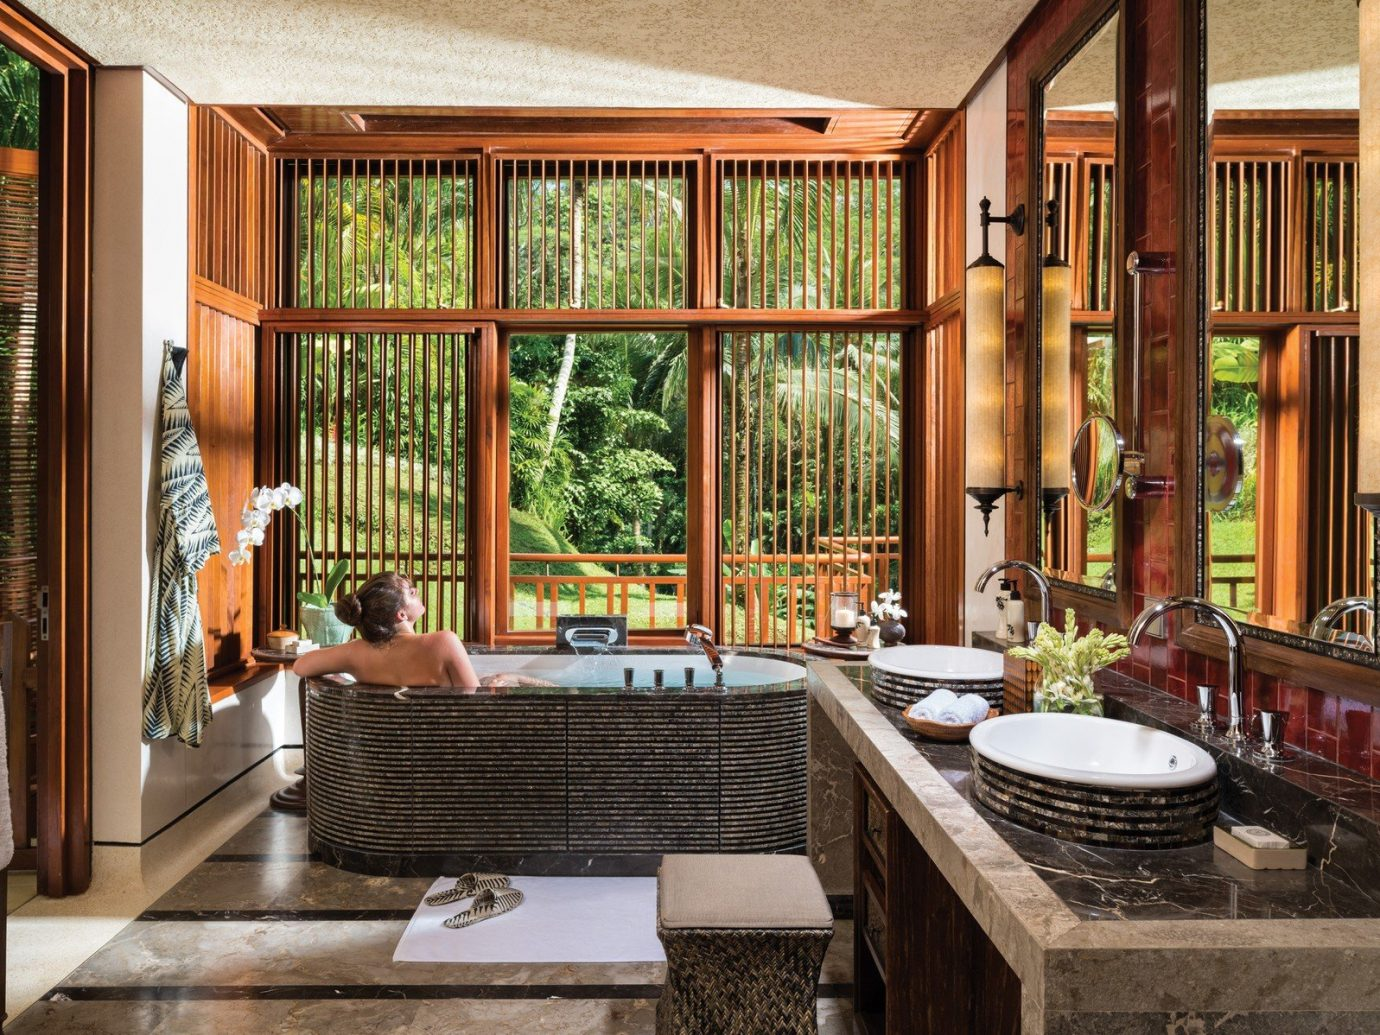 Bath bathroom calm Elegant Garden view Greenery Health + Wellness Hotels isolation Luxury open-air people regal relaxation relaxing remote Rustic serene sophisticated Tropical view woman room property indoor window estate porch home interior design living room wood cottage real estate Design farmhouse mansion stone tub furniture